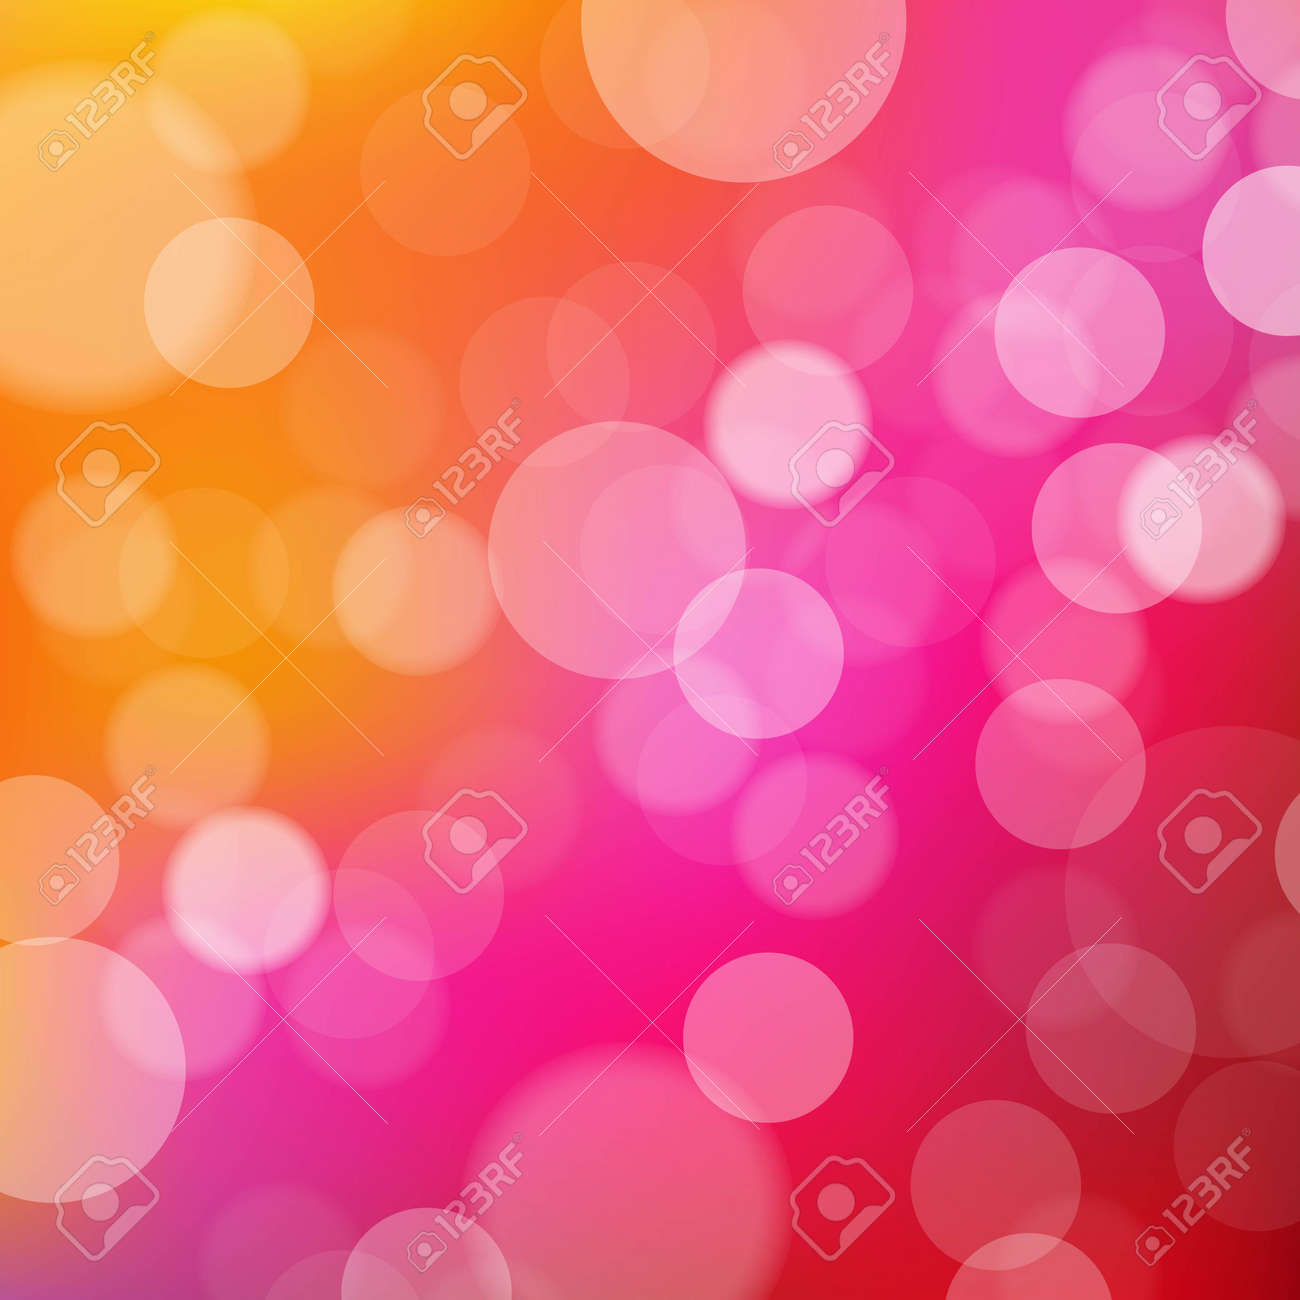 Lights Orange And Pink Background With Bokeh, With Gradient Mesh, Vector Illustration Stock Vector - 22528417